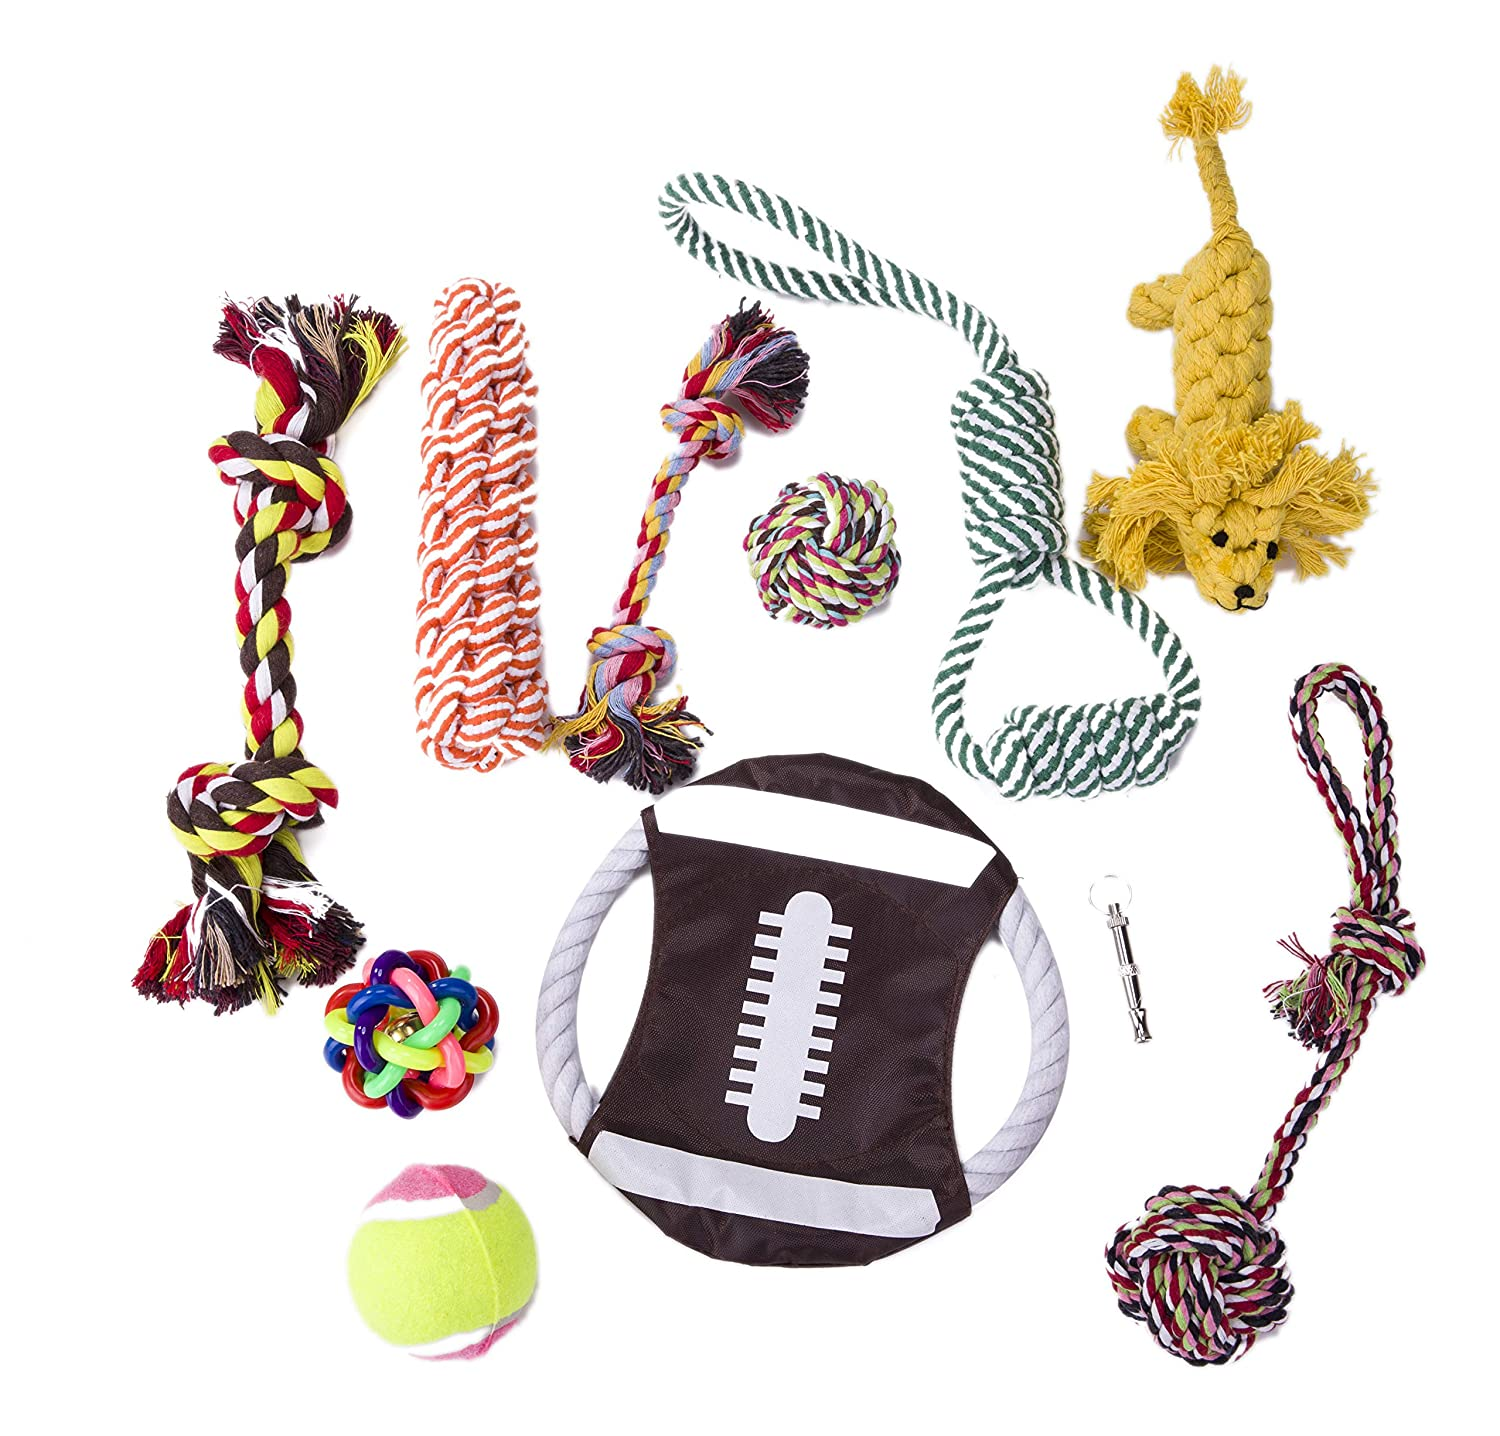 11 pack MAXIM1992 Dog Toys Set Dog Chew Toys and Ball Ropes Dog Training Toys for Small Medium and Large Dogs (11 Pack)